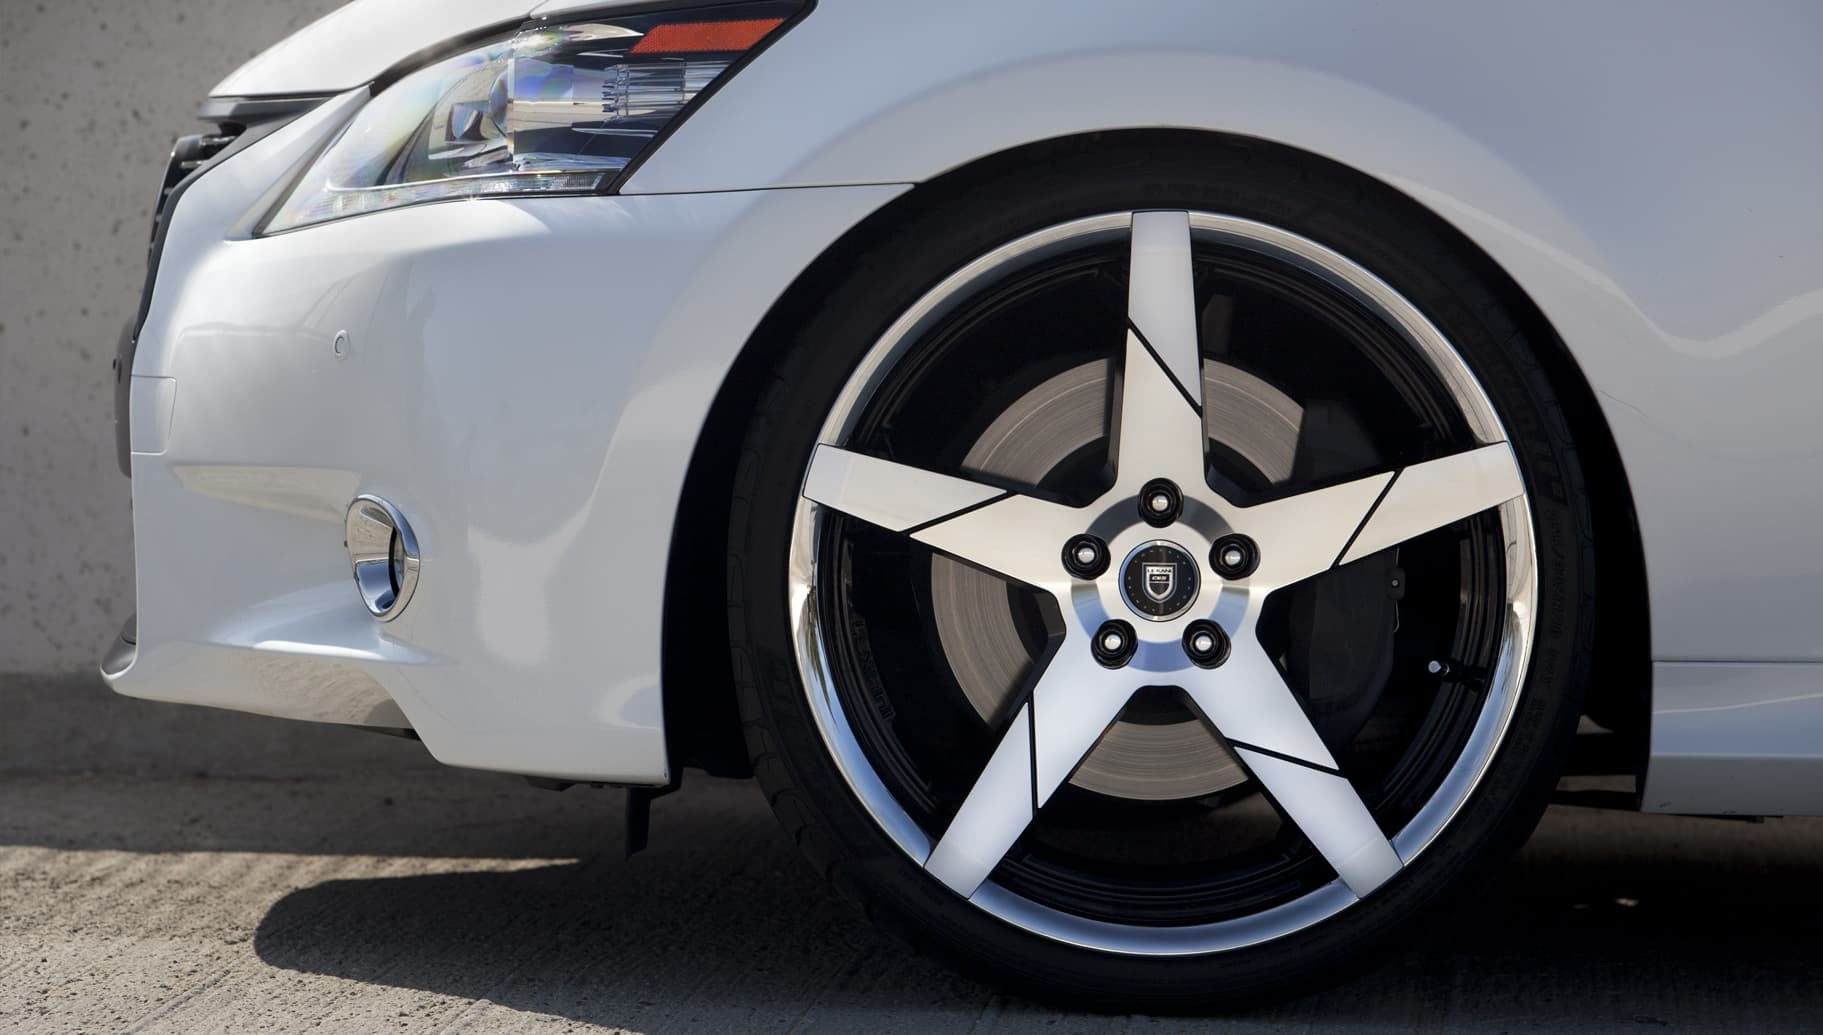 Invictus-Z on the Lexus GS350.